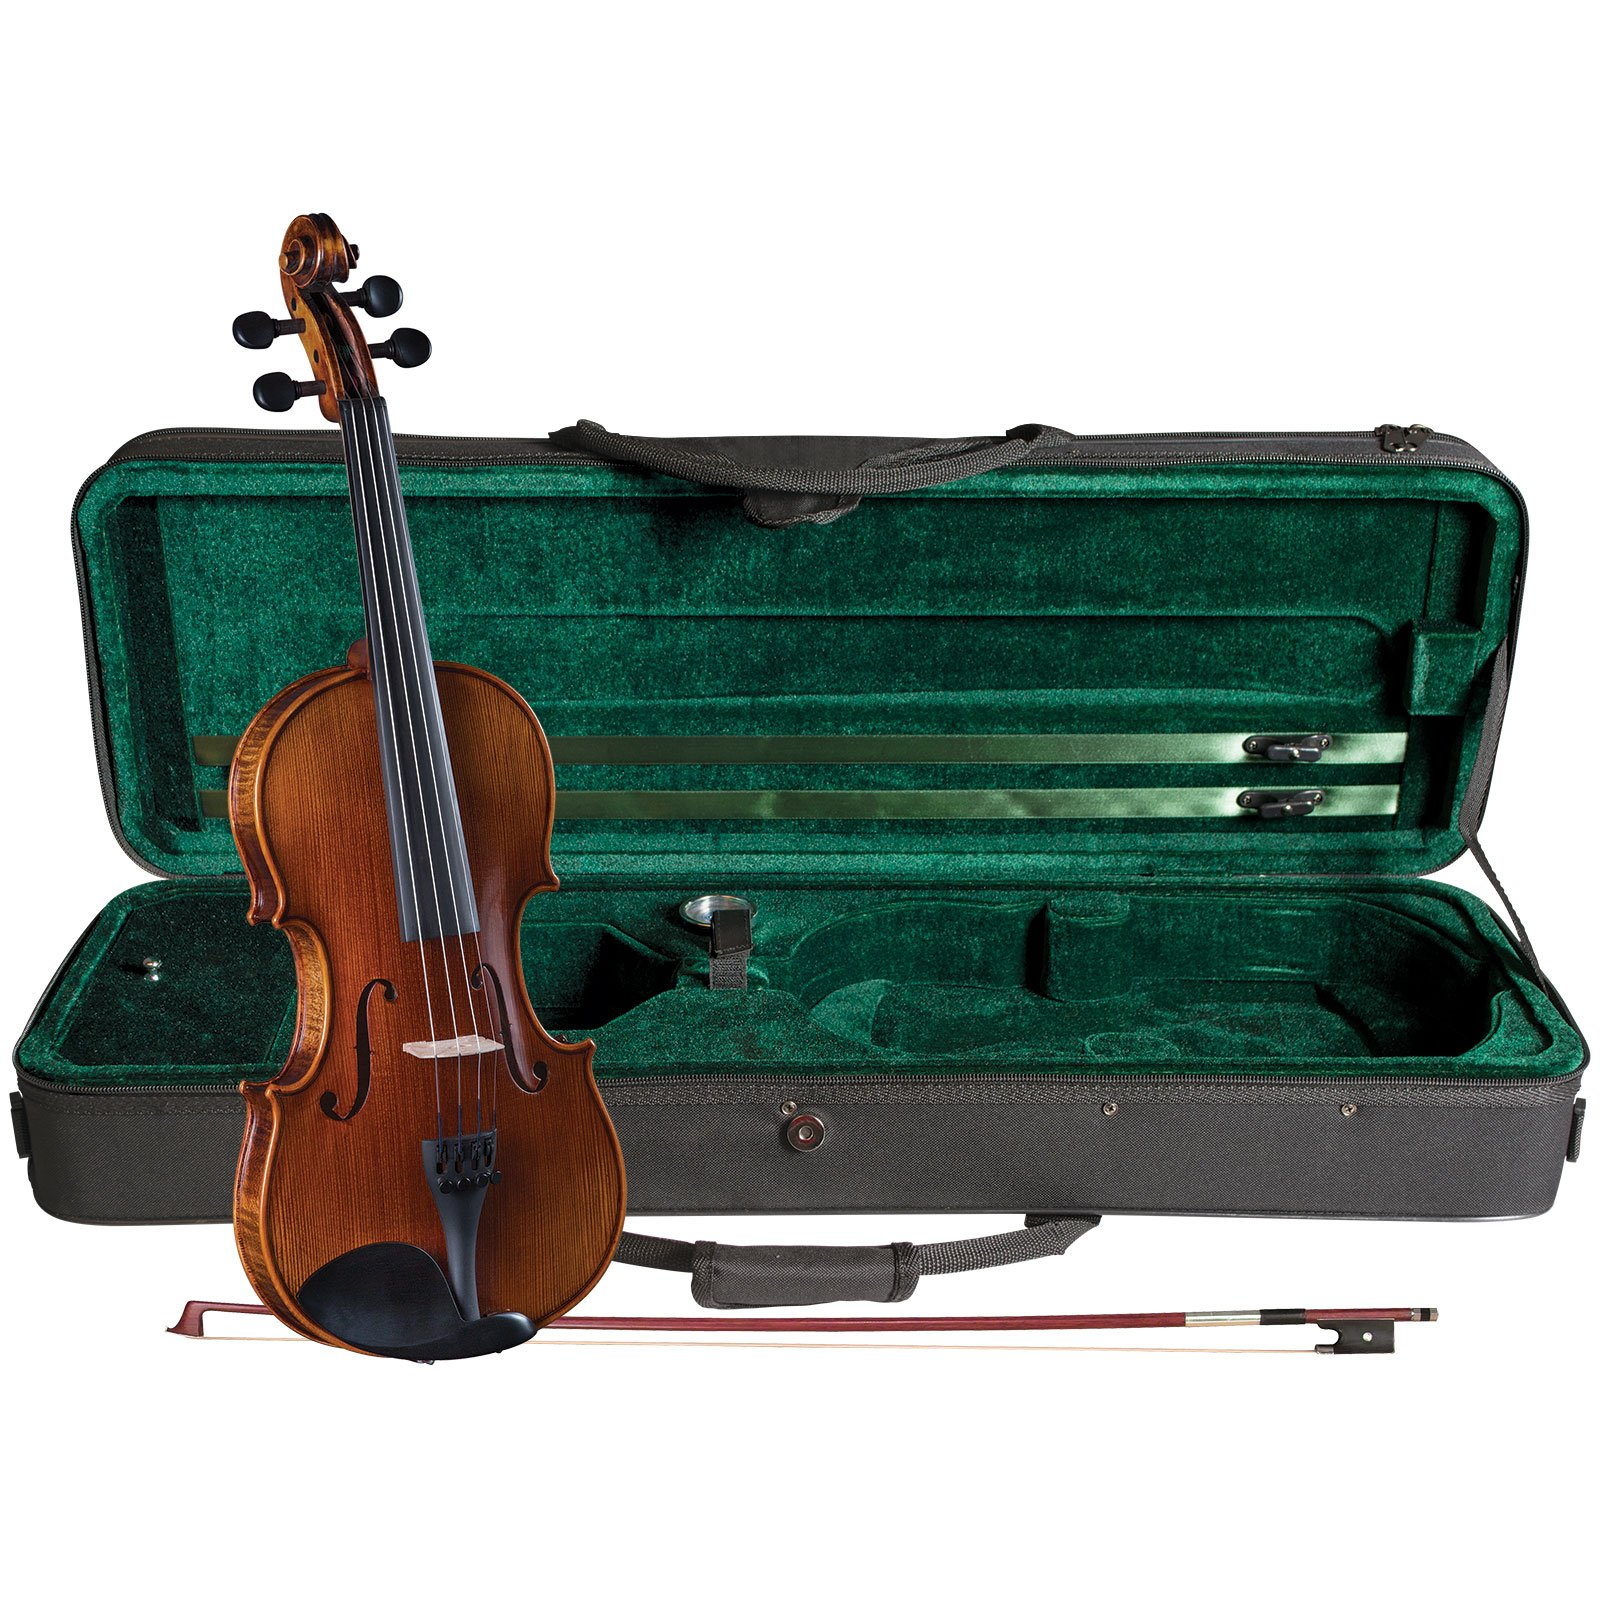 Cremona SV-500 Premier Artist Violin Outfit - 4/4 Size by Cremona